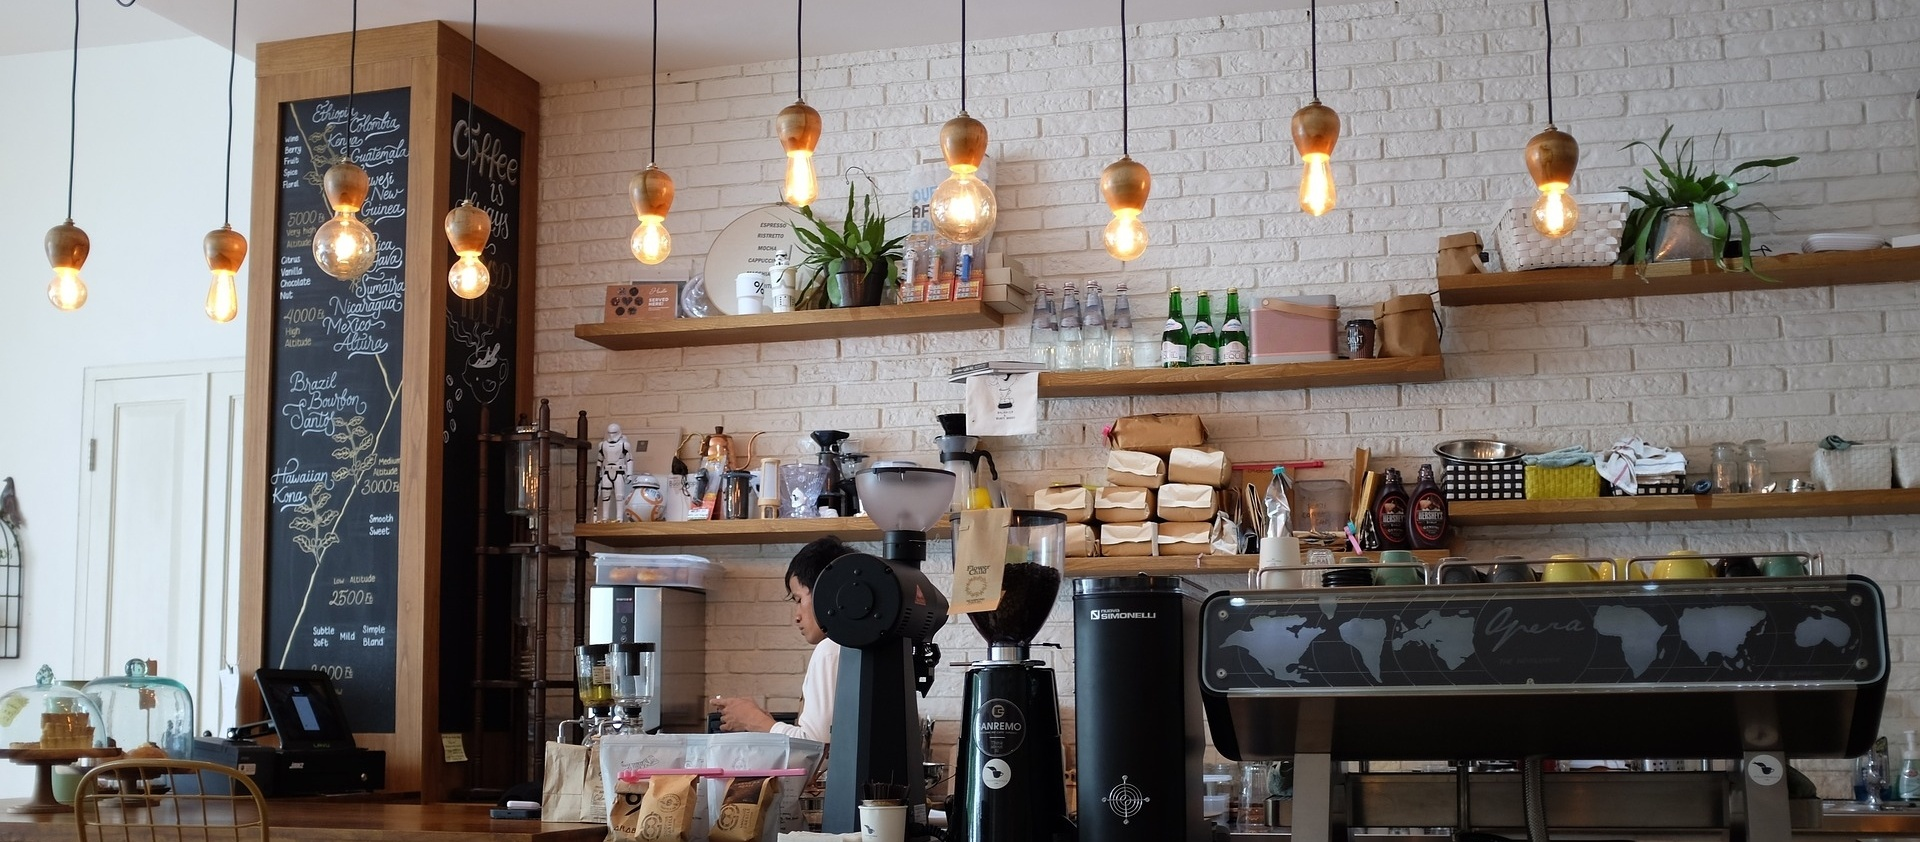 3 Clever Coffee Shop Interior Design Examples and Ideas ...